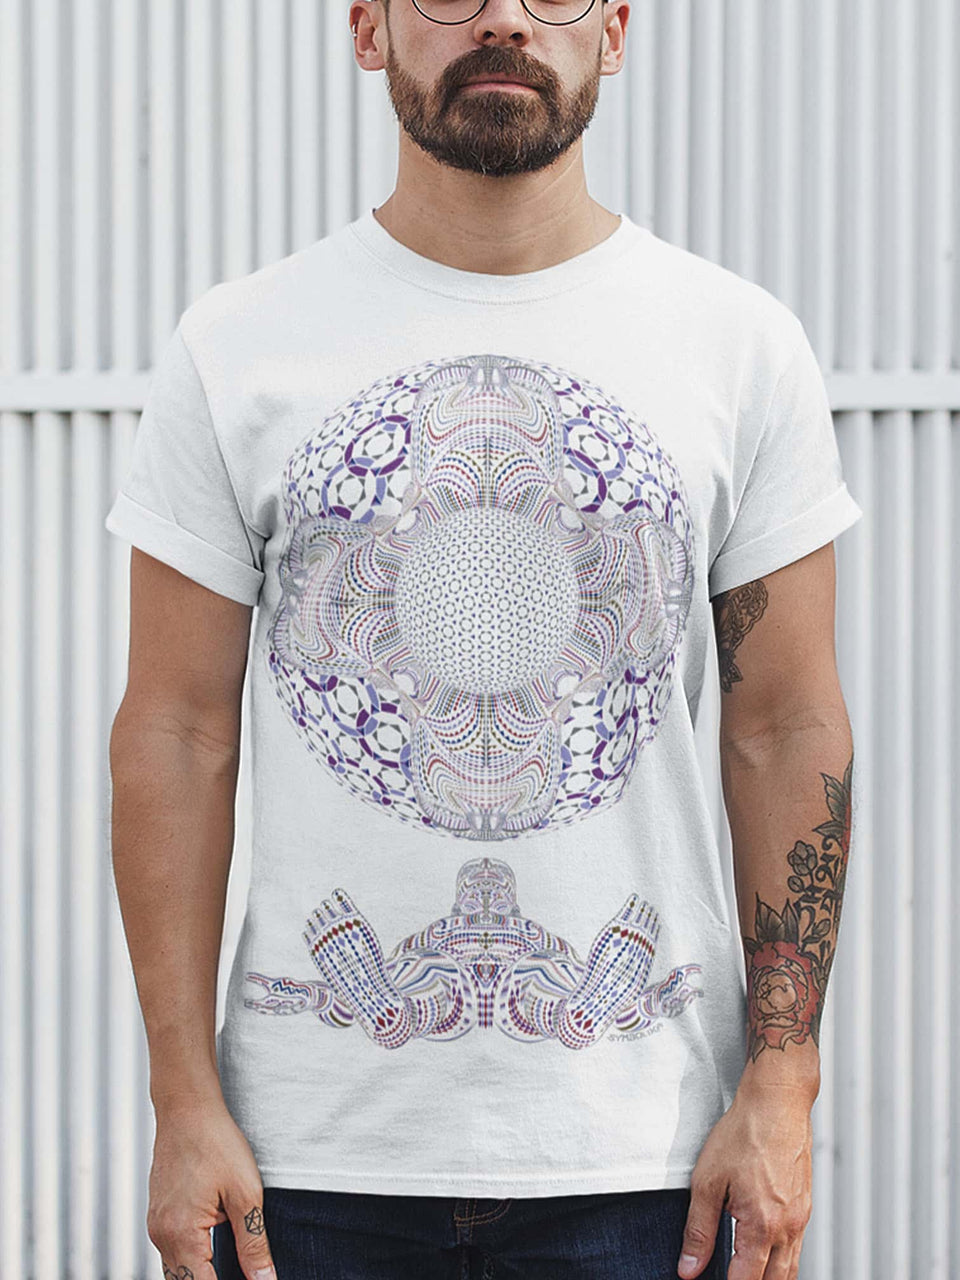 DMT HD Made To Order Men T-Shirt - White